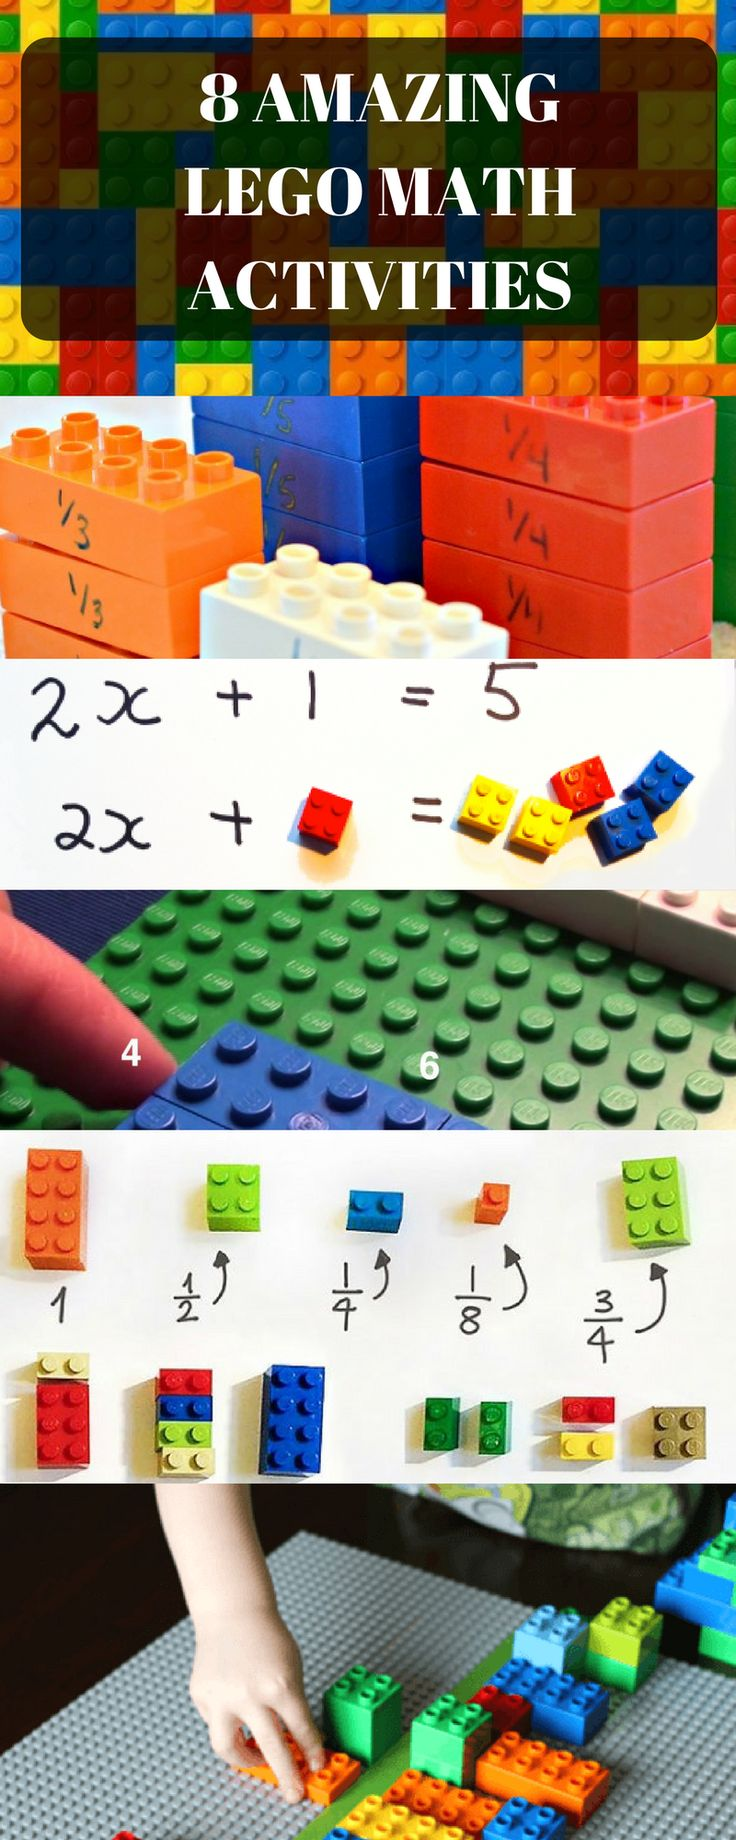 Worksheet Tips For Learning Math 1000 ideas about math tips on pinterest teacher and 8 amazing lego activities for elementary kids learn fractions algebra geometry